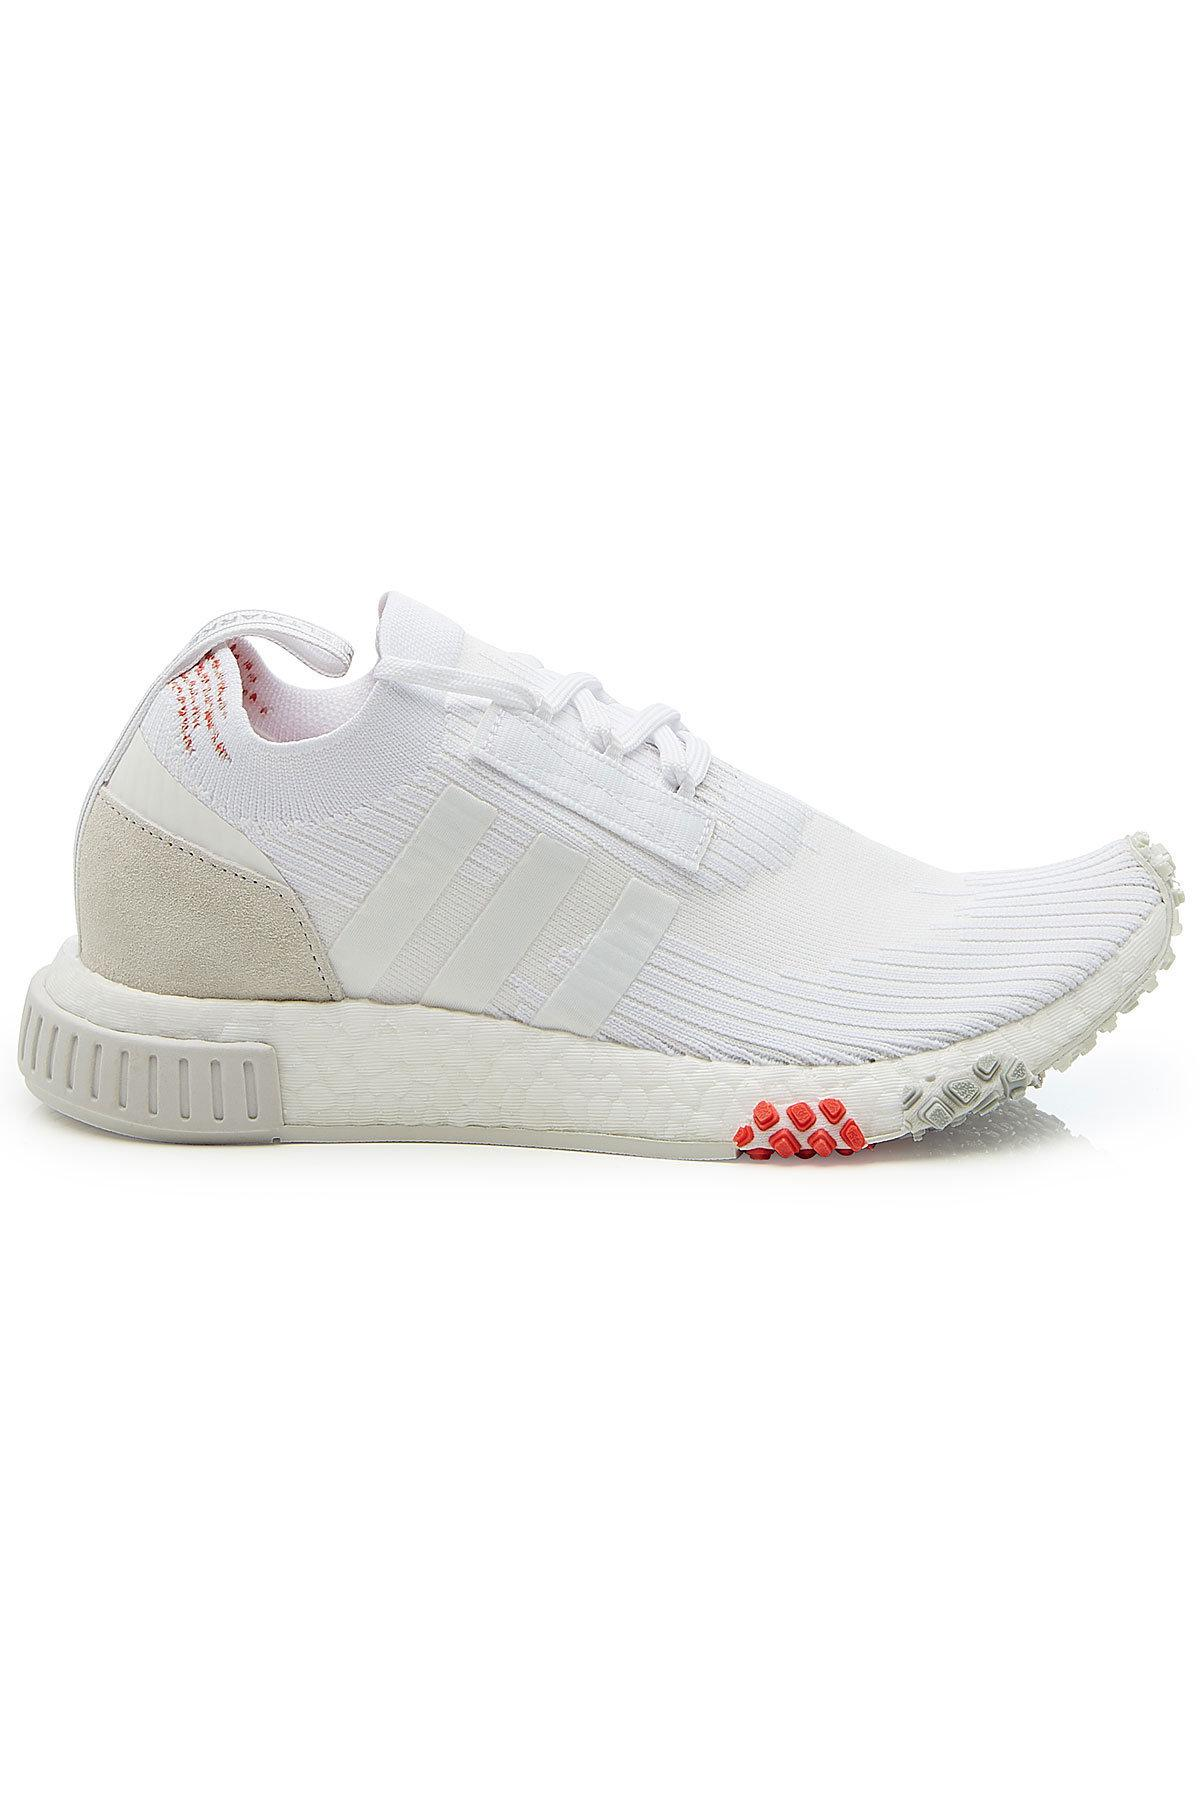 low priced 68c99 5cf5a Adidas Originals - White Nmd Racer Primeknit Sneakers - Lyst. View  fullscreen